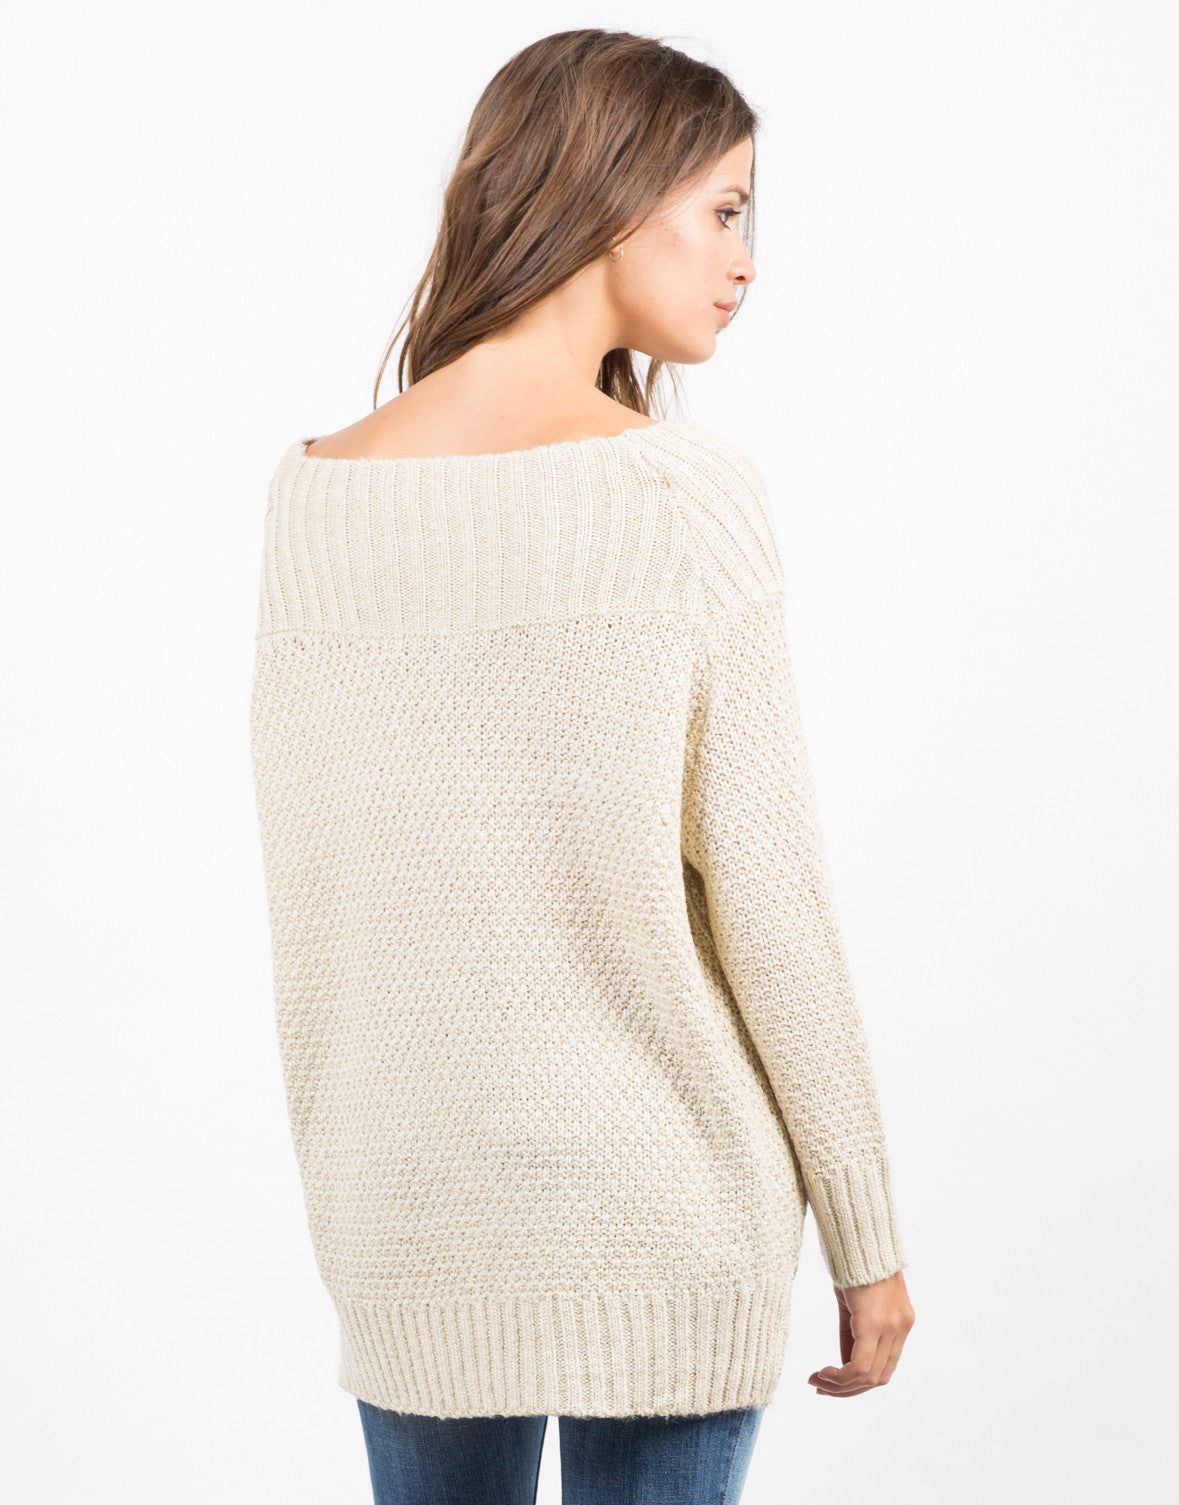 Golden Knit Sweater - 2020AVE